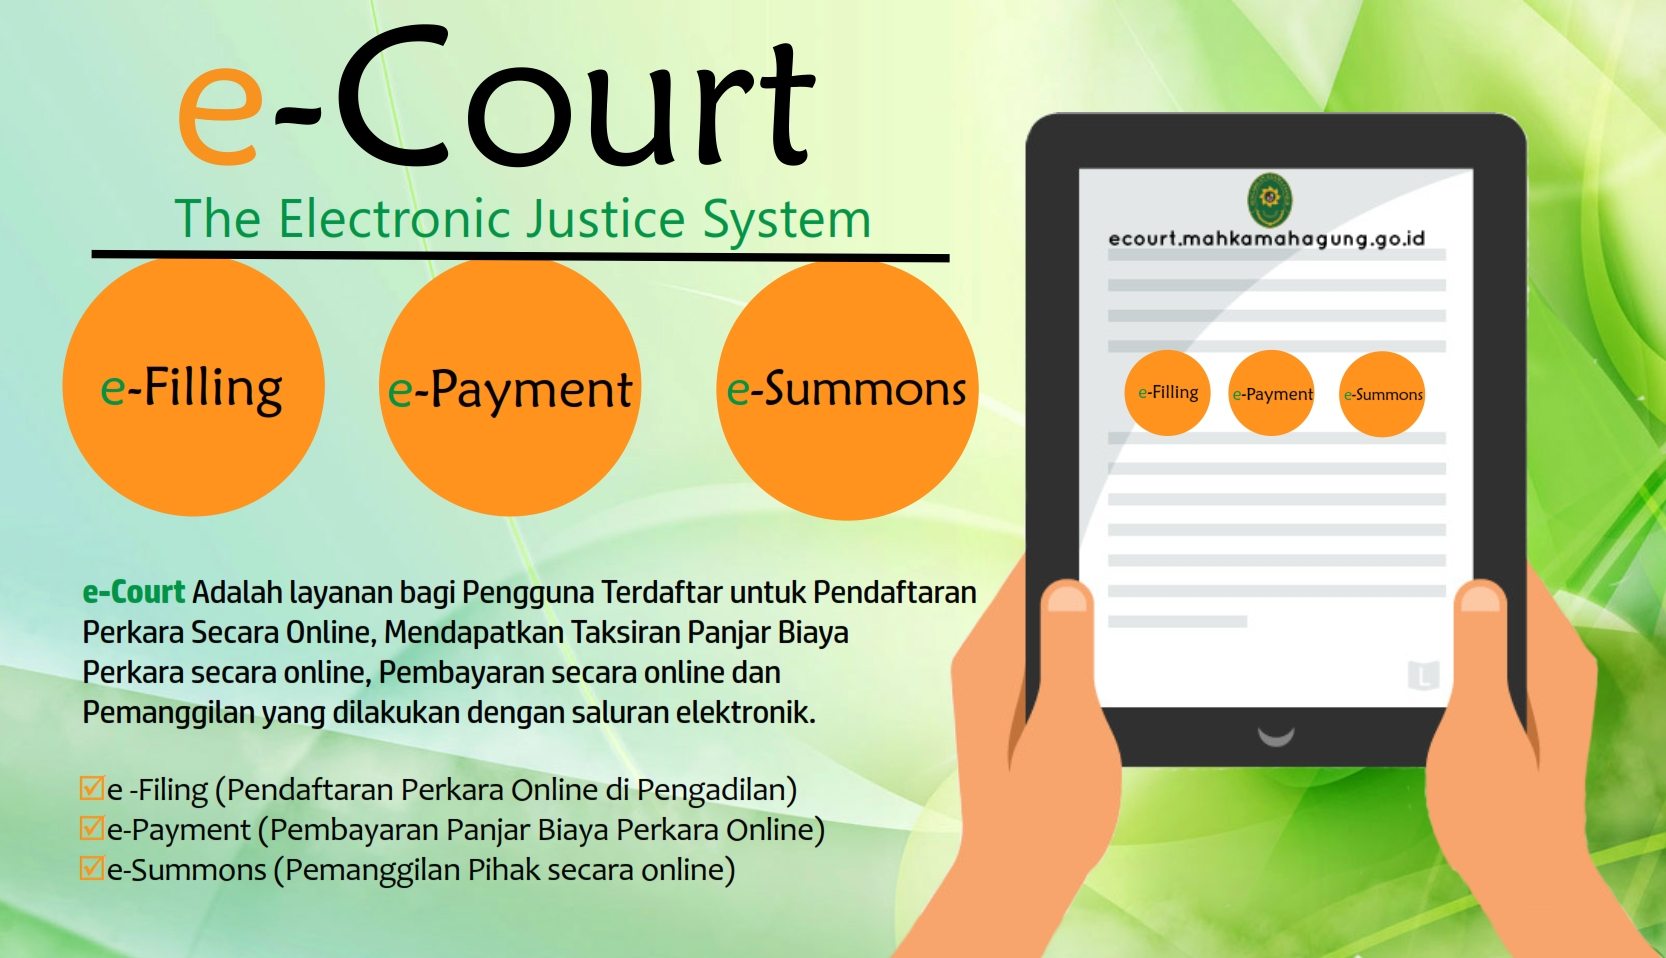 E-COURT (Electronic Justice System)